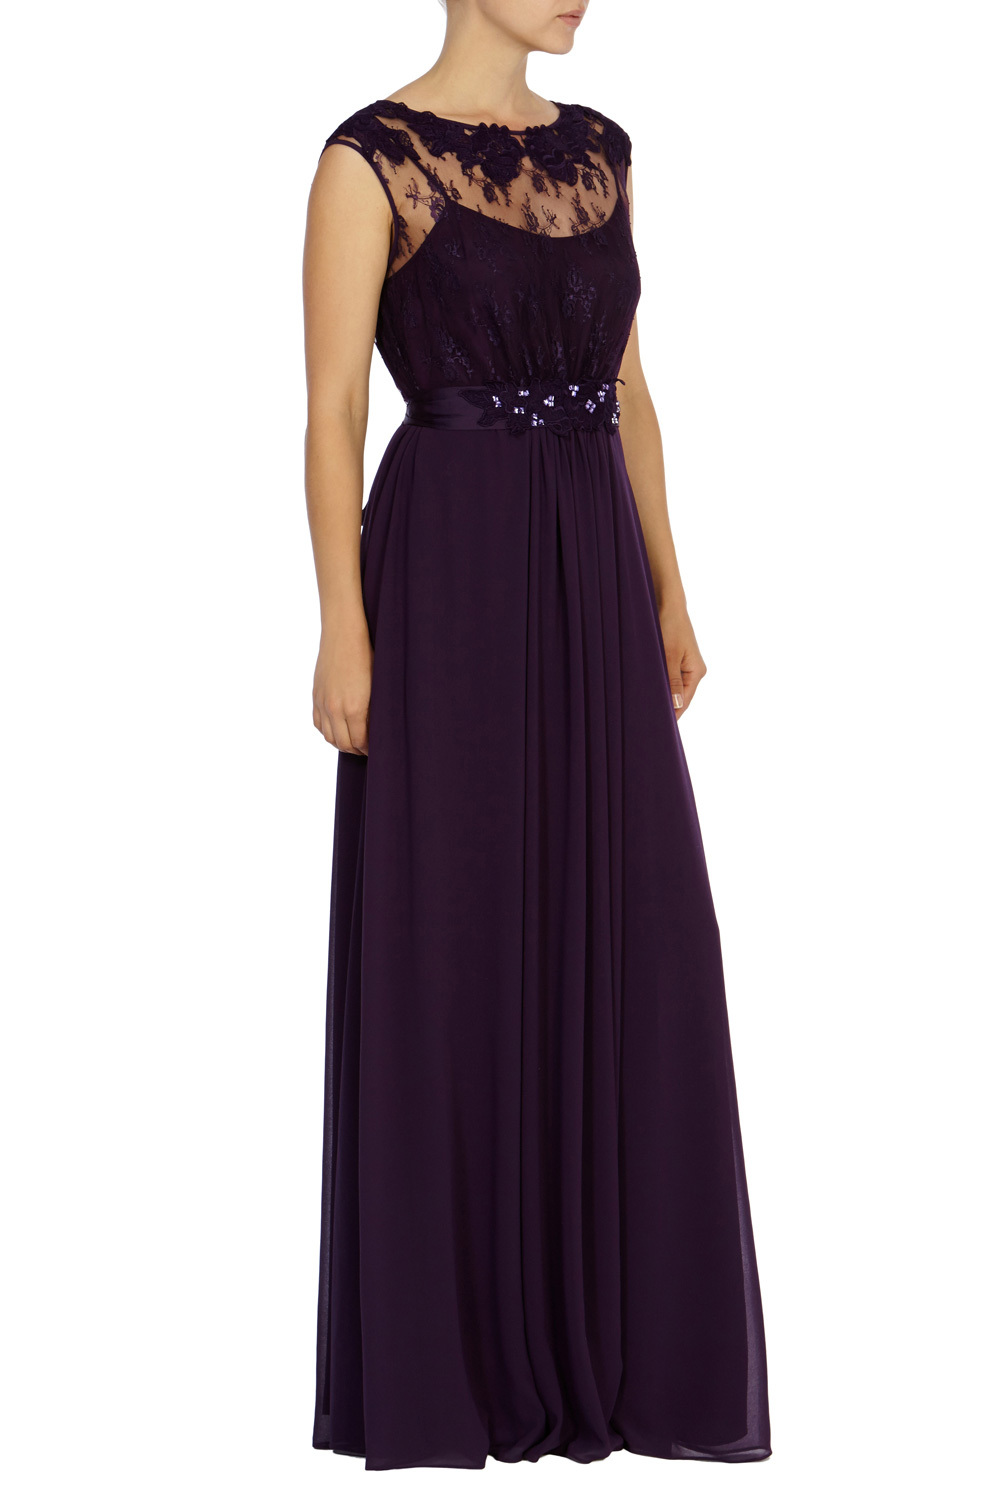 Lori May Maxi Dress Sl - pattern: plain; sleeve style: sleeveless; style: maxi dress; bust detail: sheer at bust; predominant colour: purple; occasions: evening; length: floor length; fit: body skimming; fibres: polyester/polyamide - 100%; neckline: crew; hip detail: subtle/flattering hip detail; sleeve length: sleeveless; texture group: sheer fabrics/chiffon/organza etc.; pattern type: fabric; embellishment: lace; season: s/s 2016; wardrobe: event